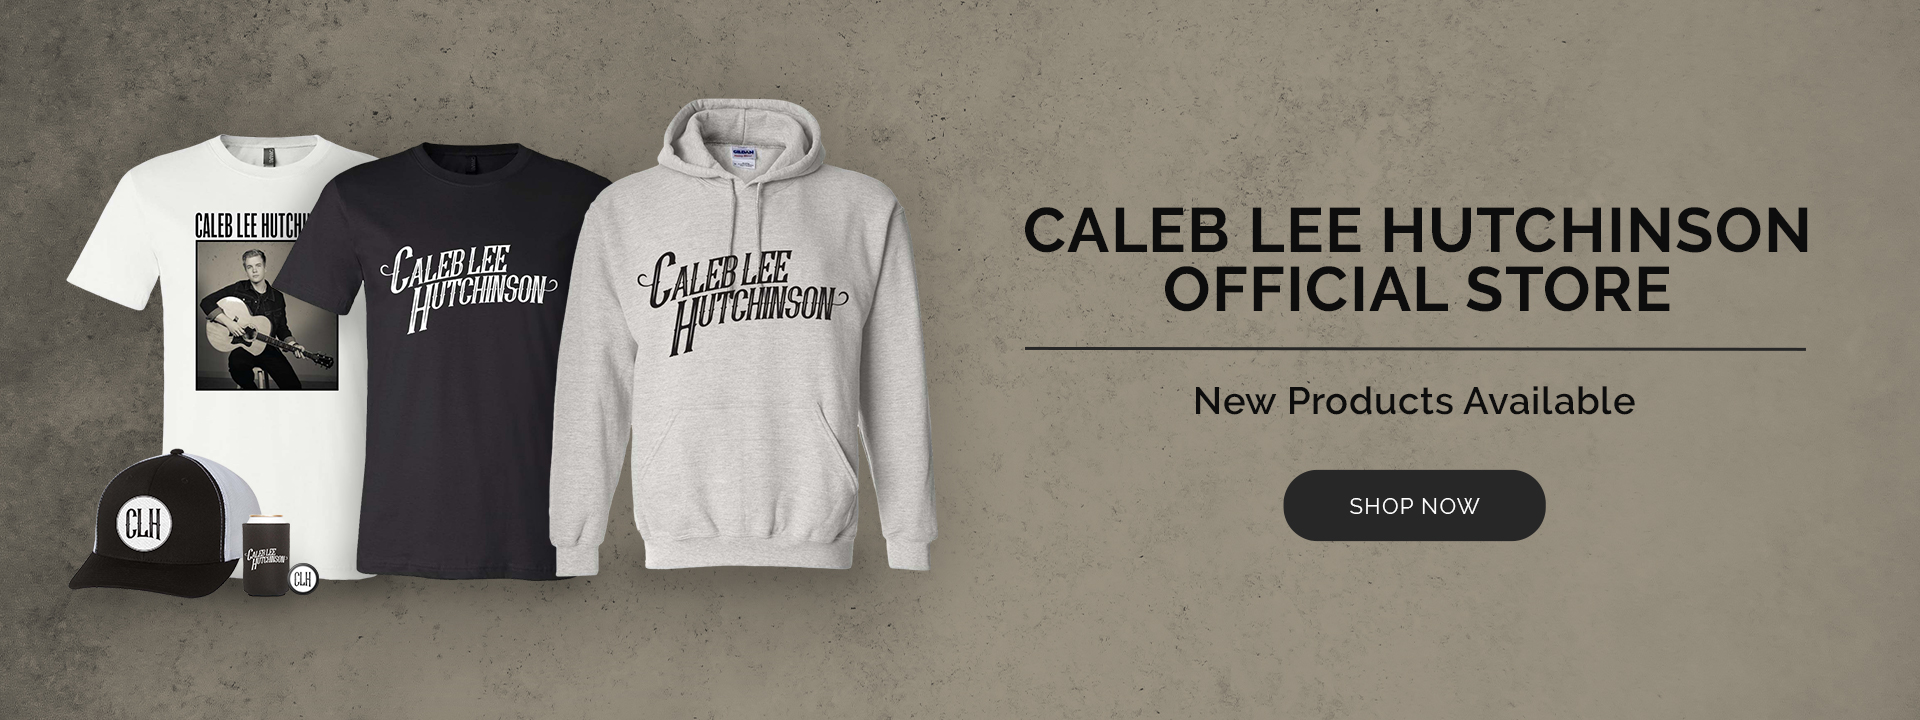 Caleb Lee Hutchinson New Products Available Now Shop Now